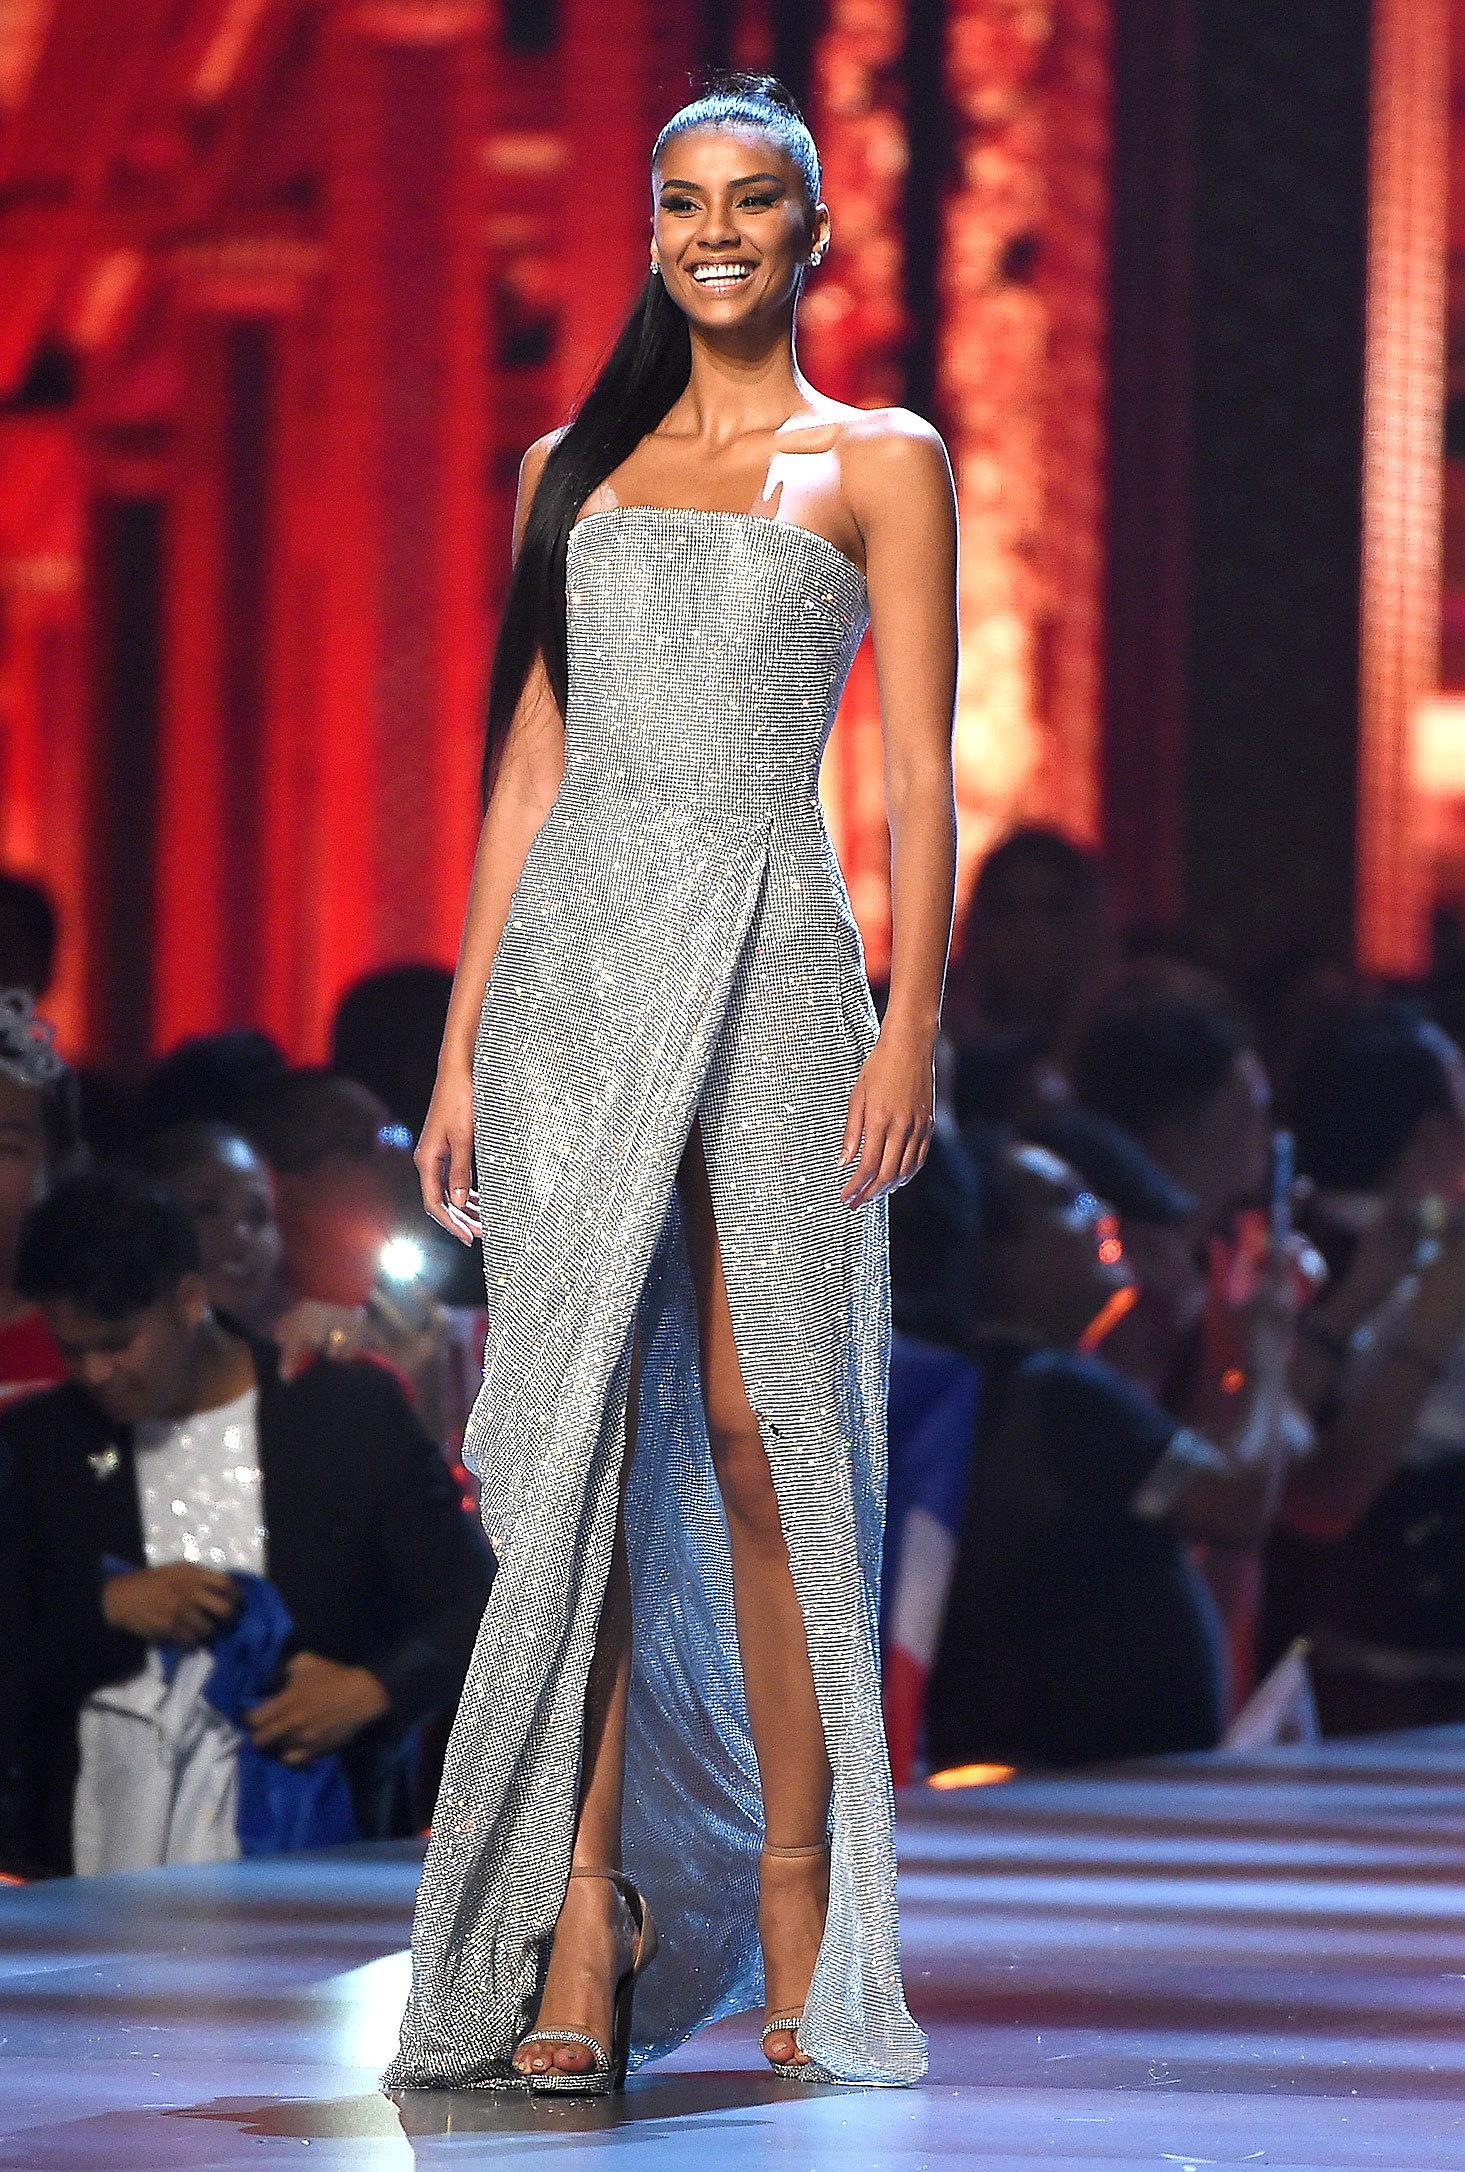 1-miss-South-Africa-Tamaryn-Green - In a dazzling silver gown featuring beading and a thigh-high slit.